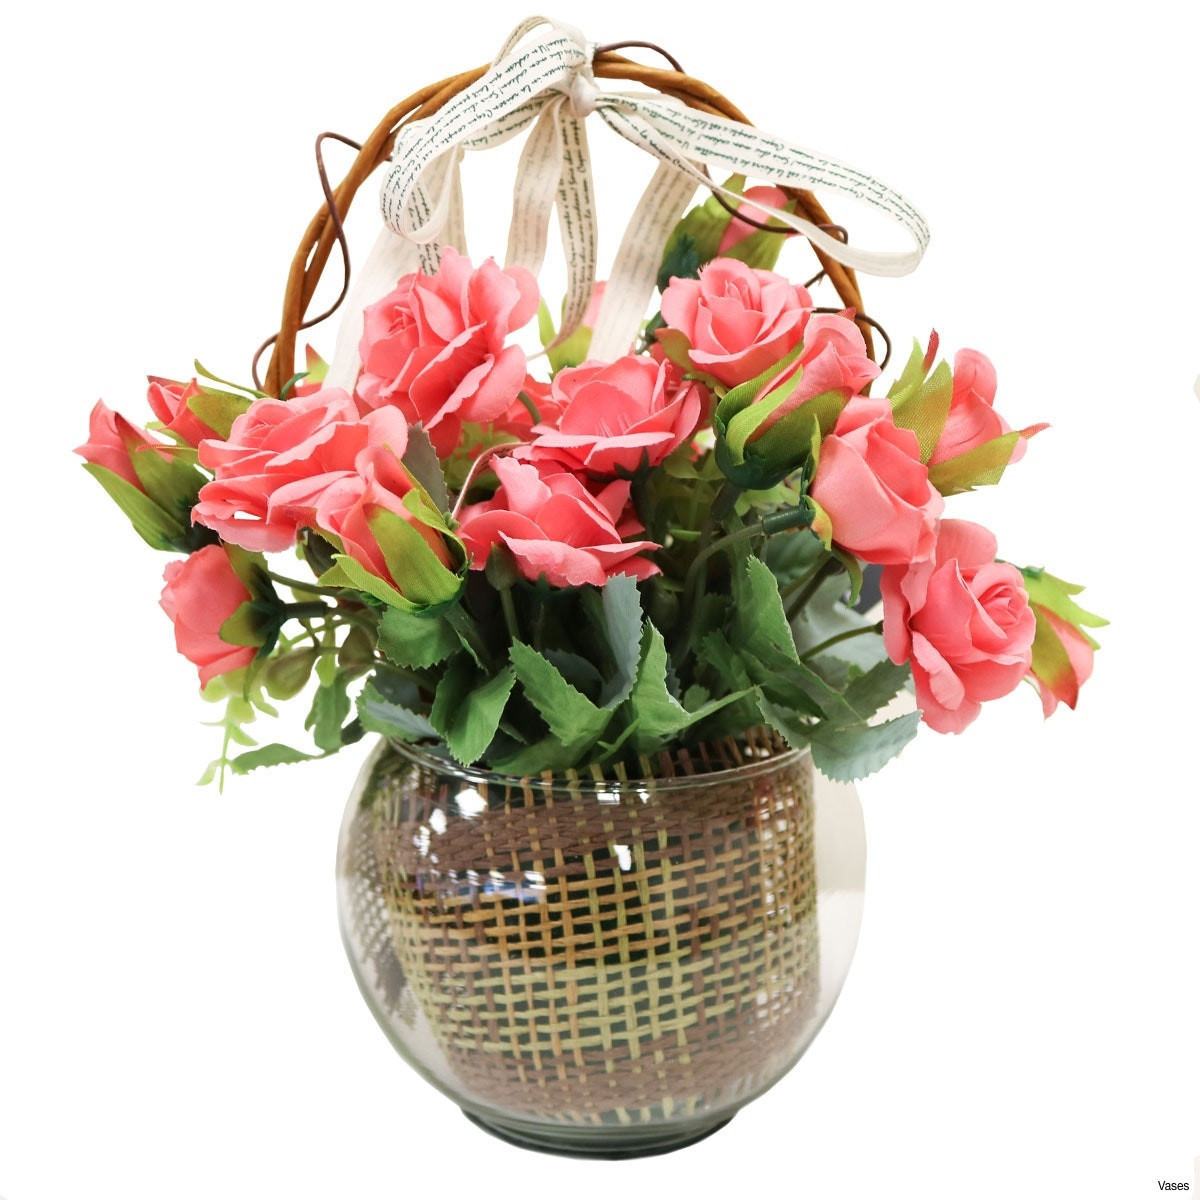 30 floor vase of 30 elegant flower basket decoration flower decoration ideas with regard to bf142 11km 1200x1200h vases pink flower vase i 0d gold inspiration